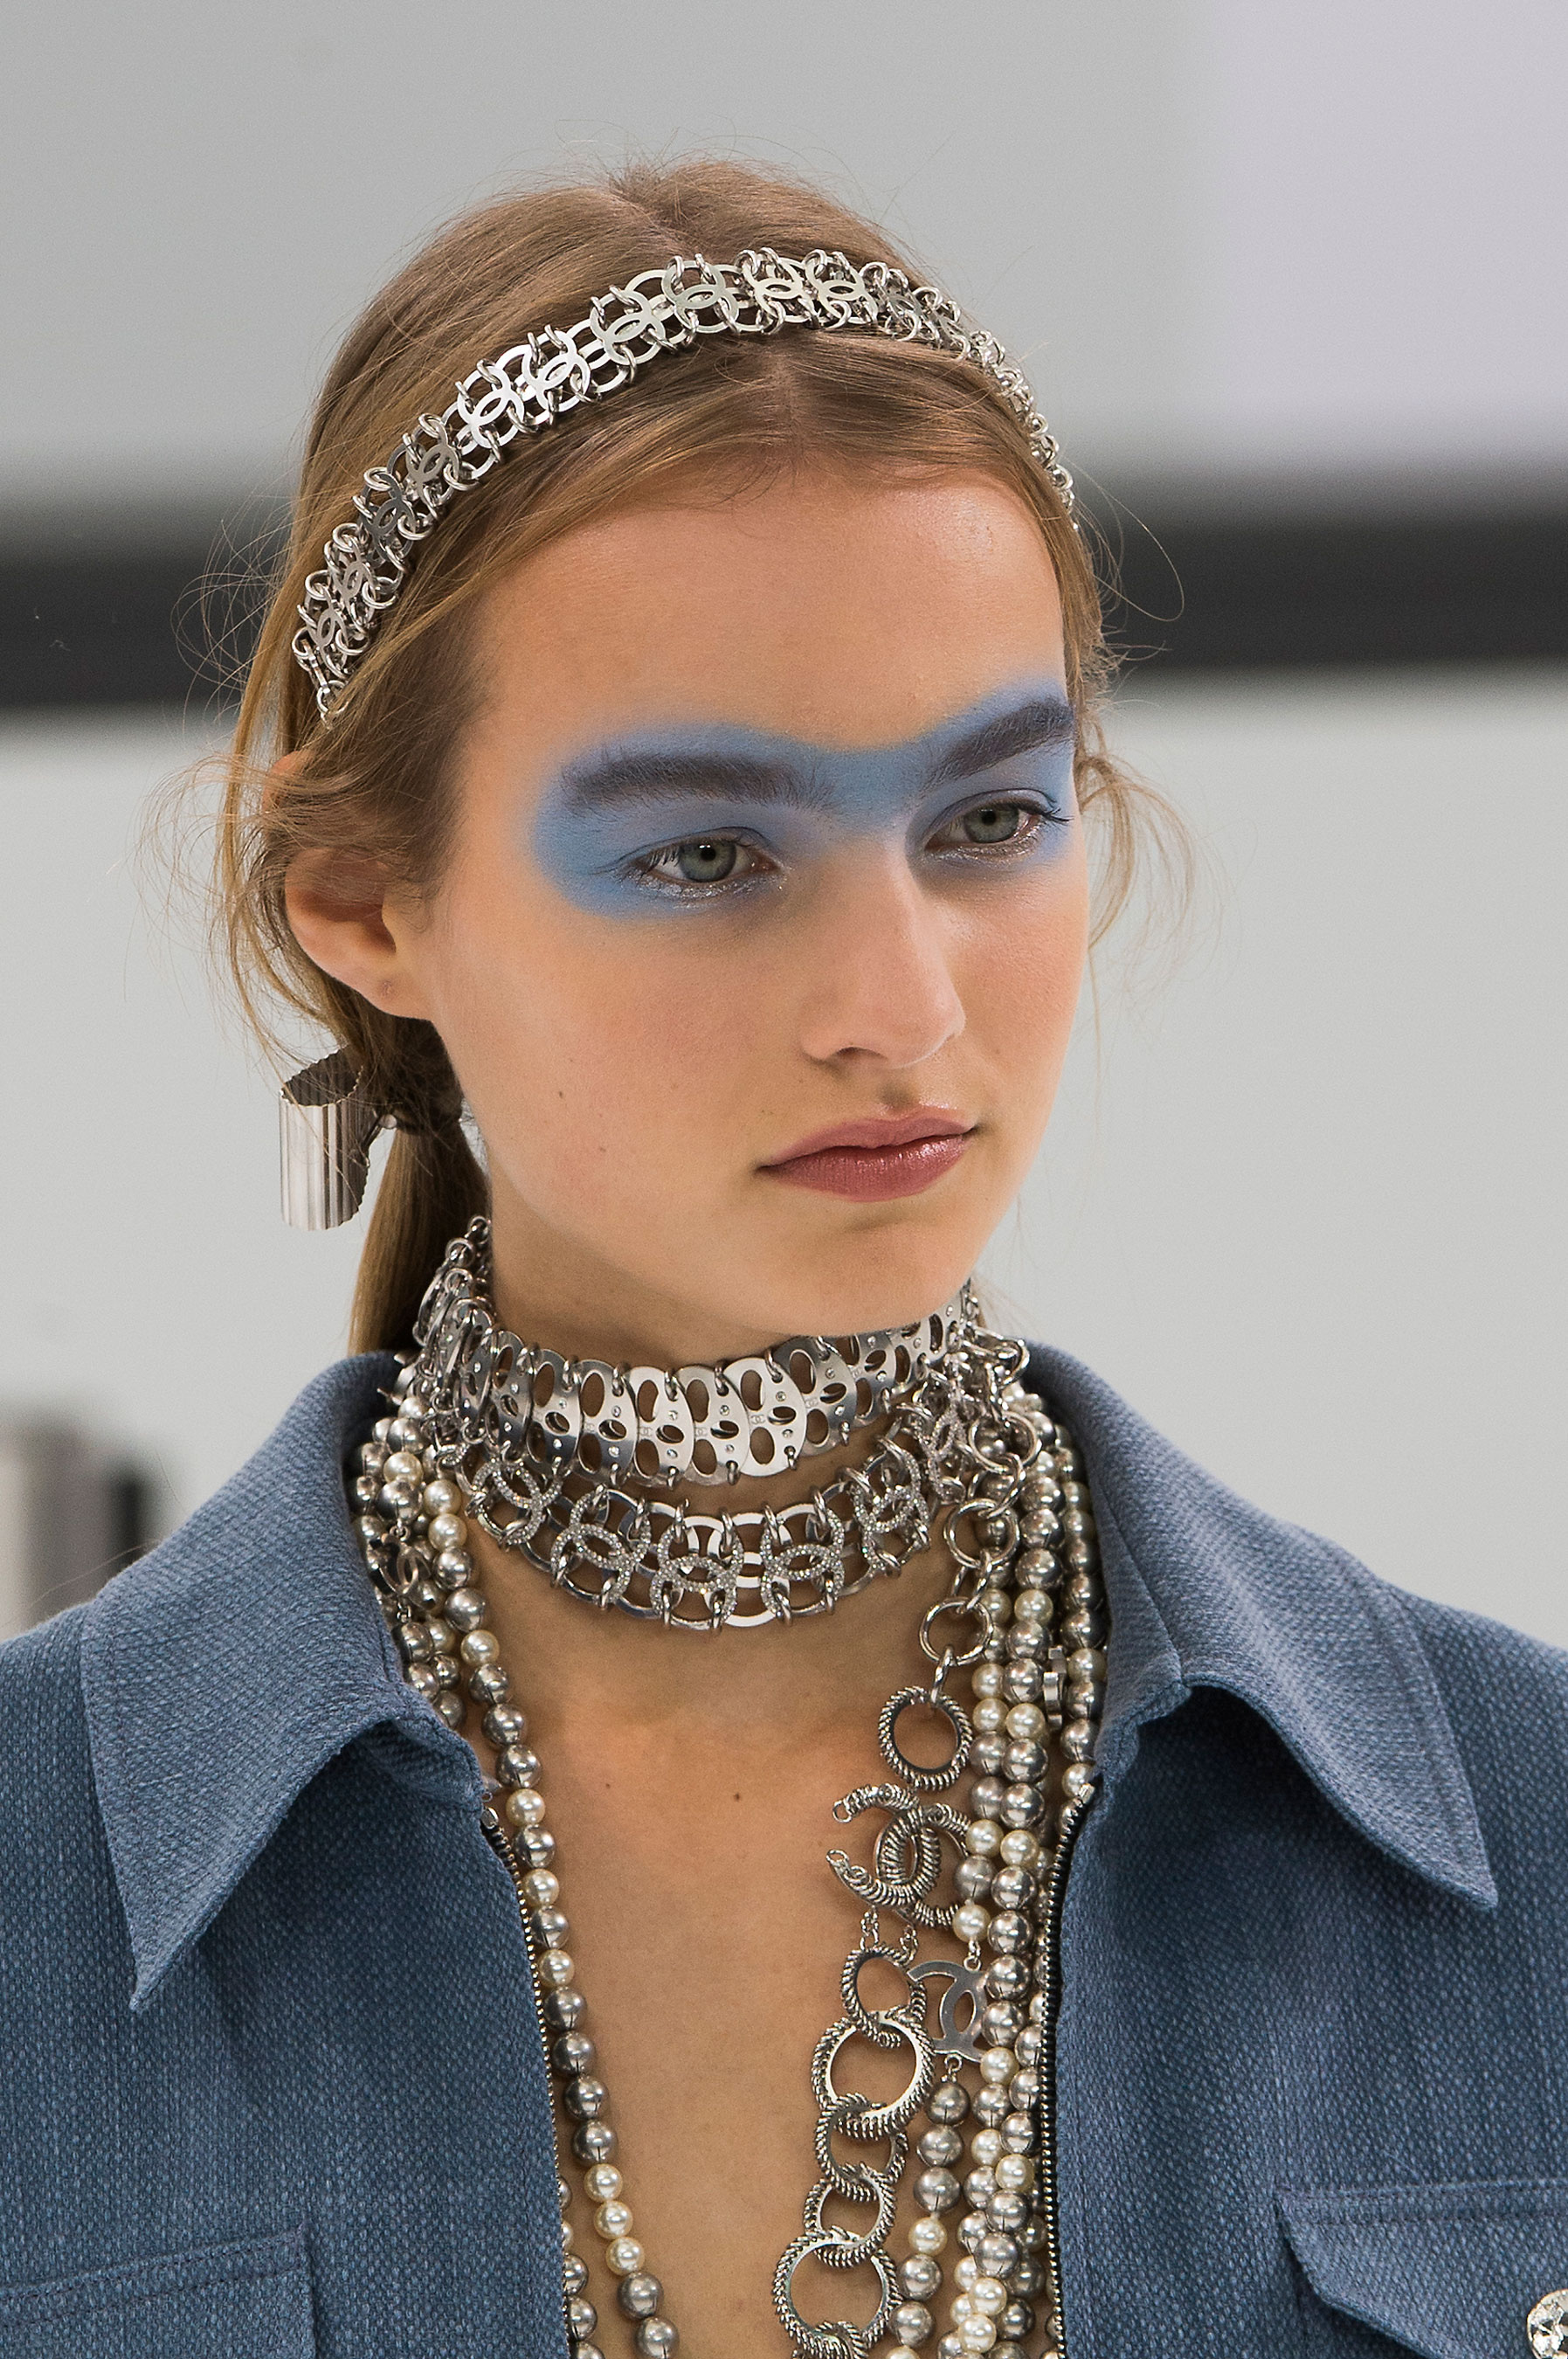 Chanel-spring-2016-runway-beauty-fashion-show-the-impression-43